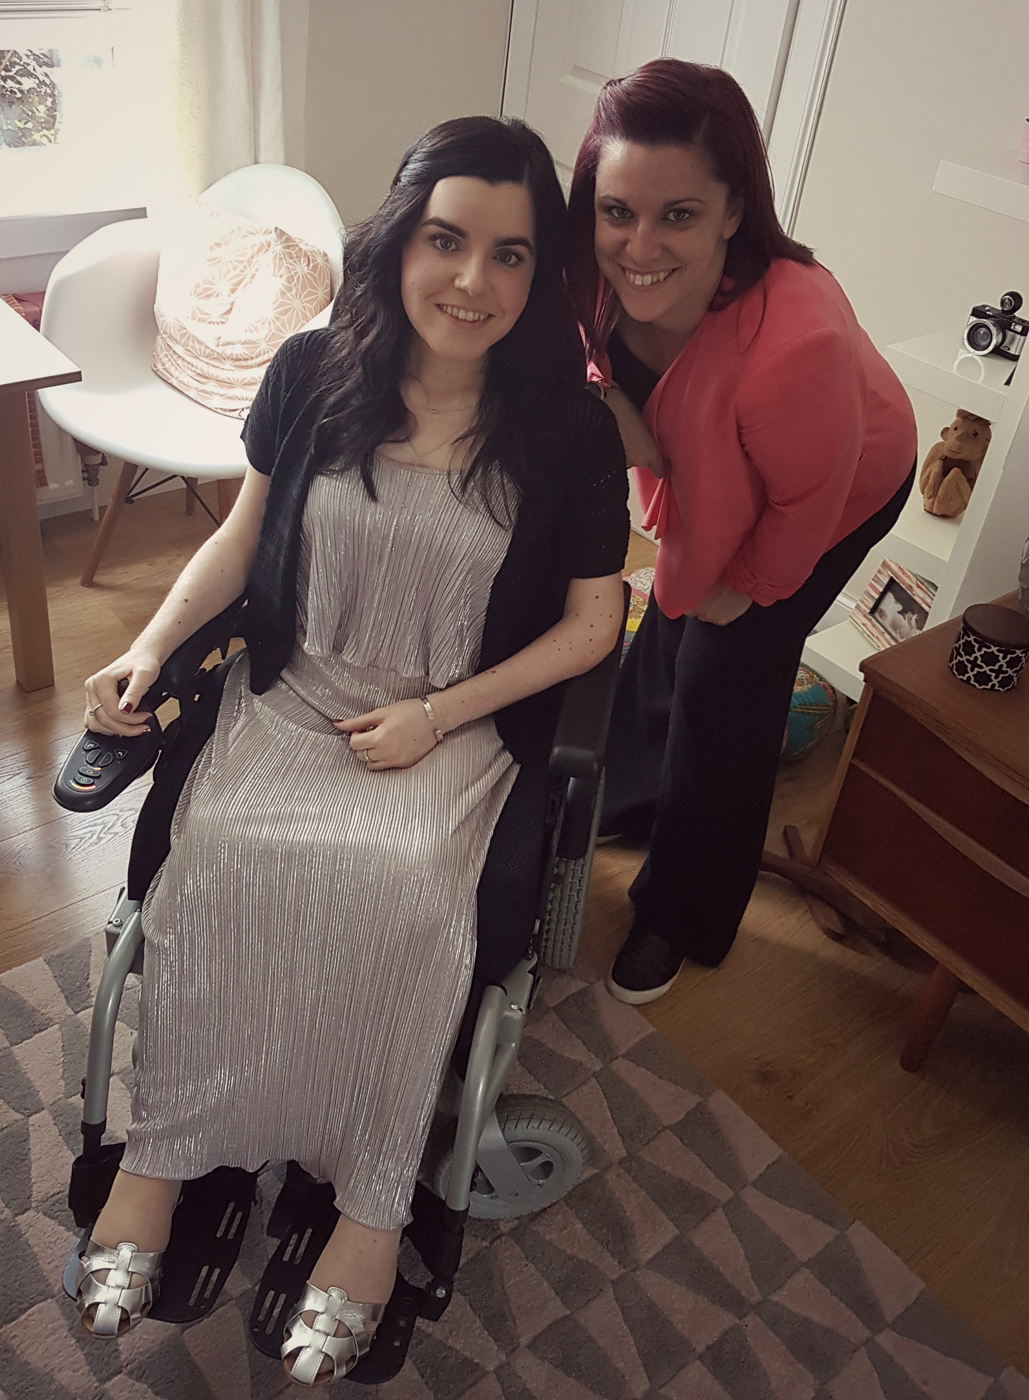 Emma is sitting in her wheelchair. She is wearing a dress. Her sister is standing beside her. They are both smiling.